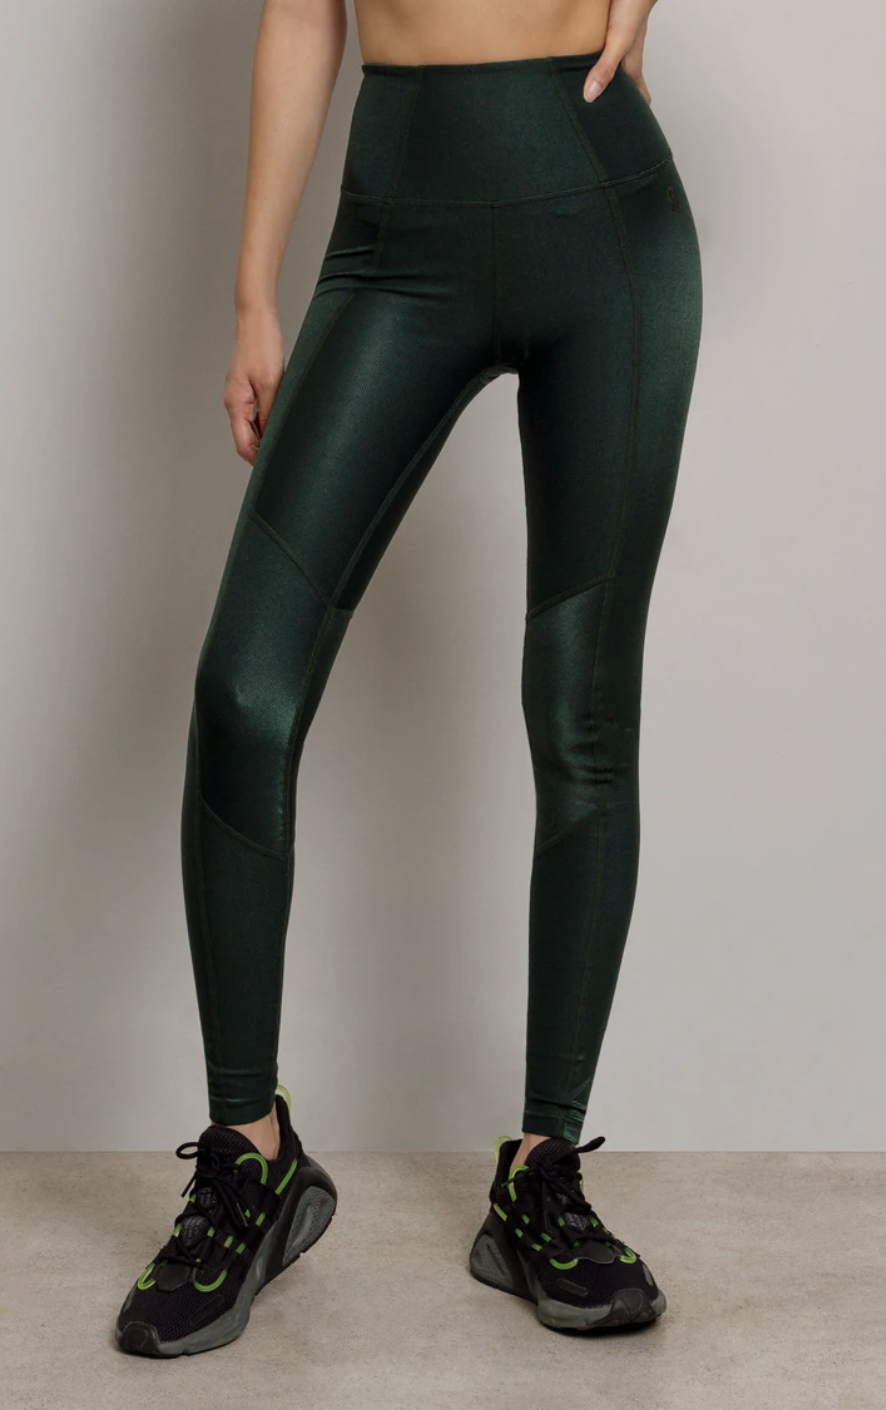 Good American Shiny Rib Legging - $66 (originally $108)